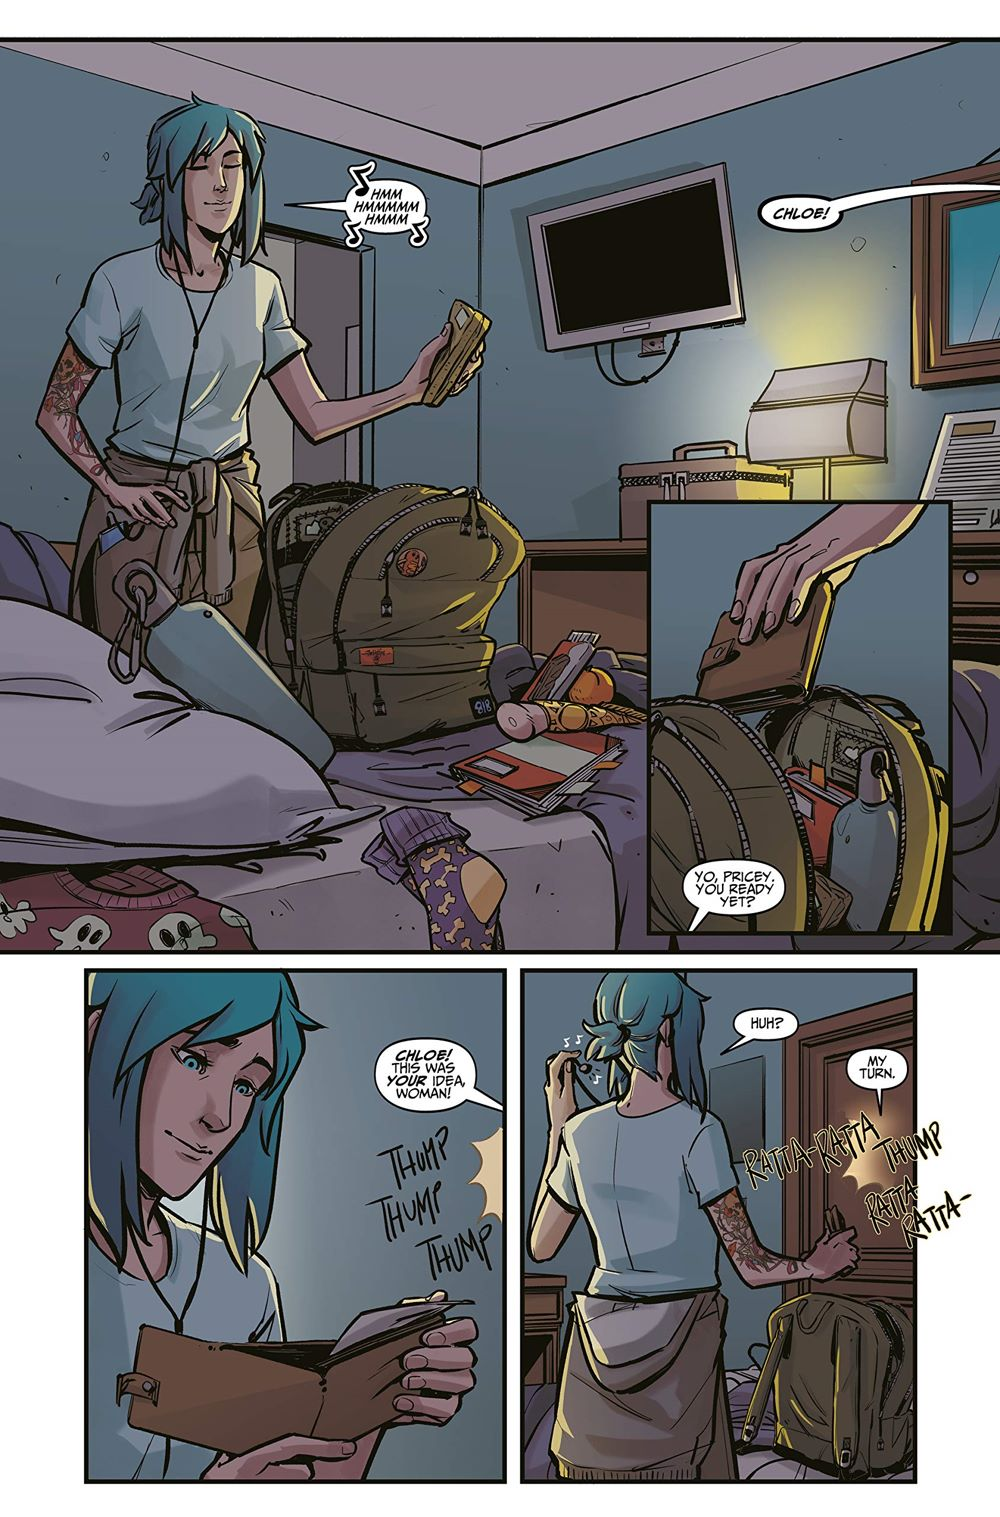 Life-is-Strange-4-spread-1 ComicList Previews: LIFE IS STRANGE VOLUME 4 PARTNERS IN TIME TRACKS TP